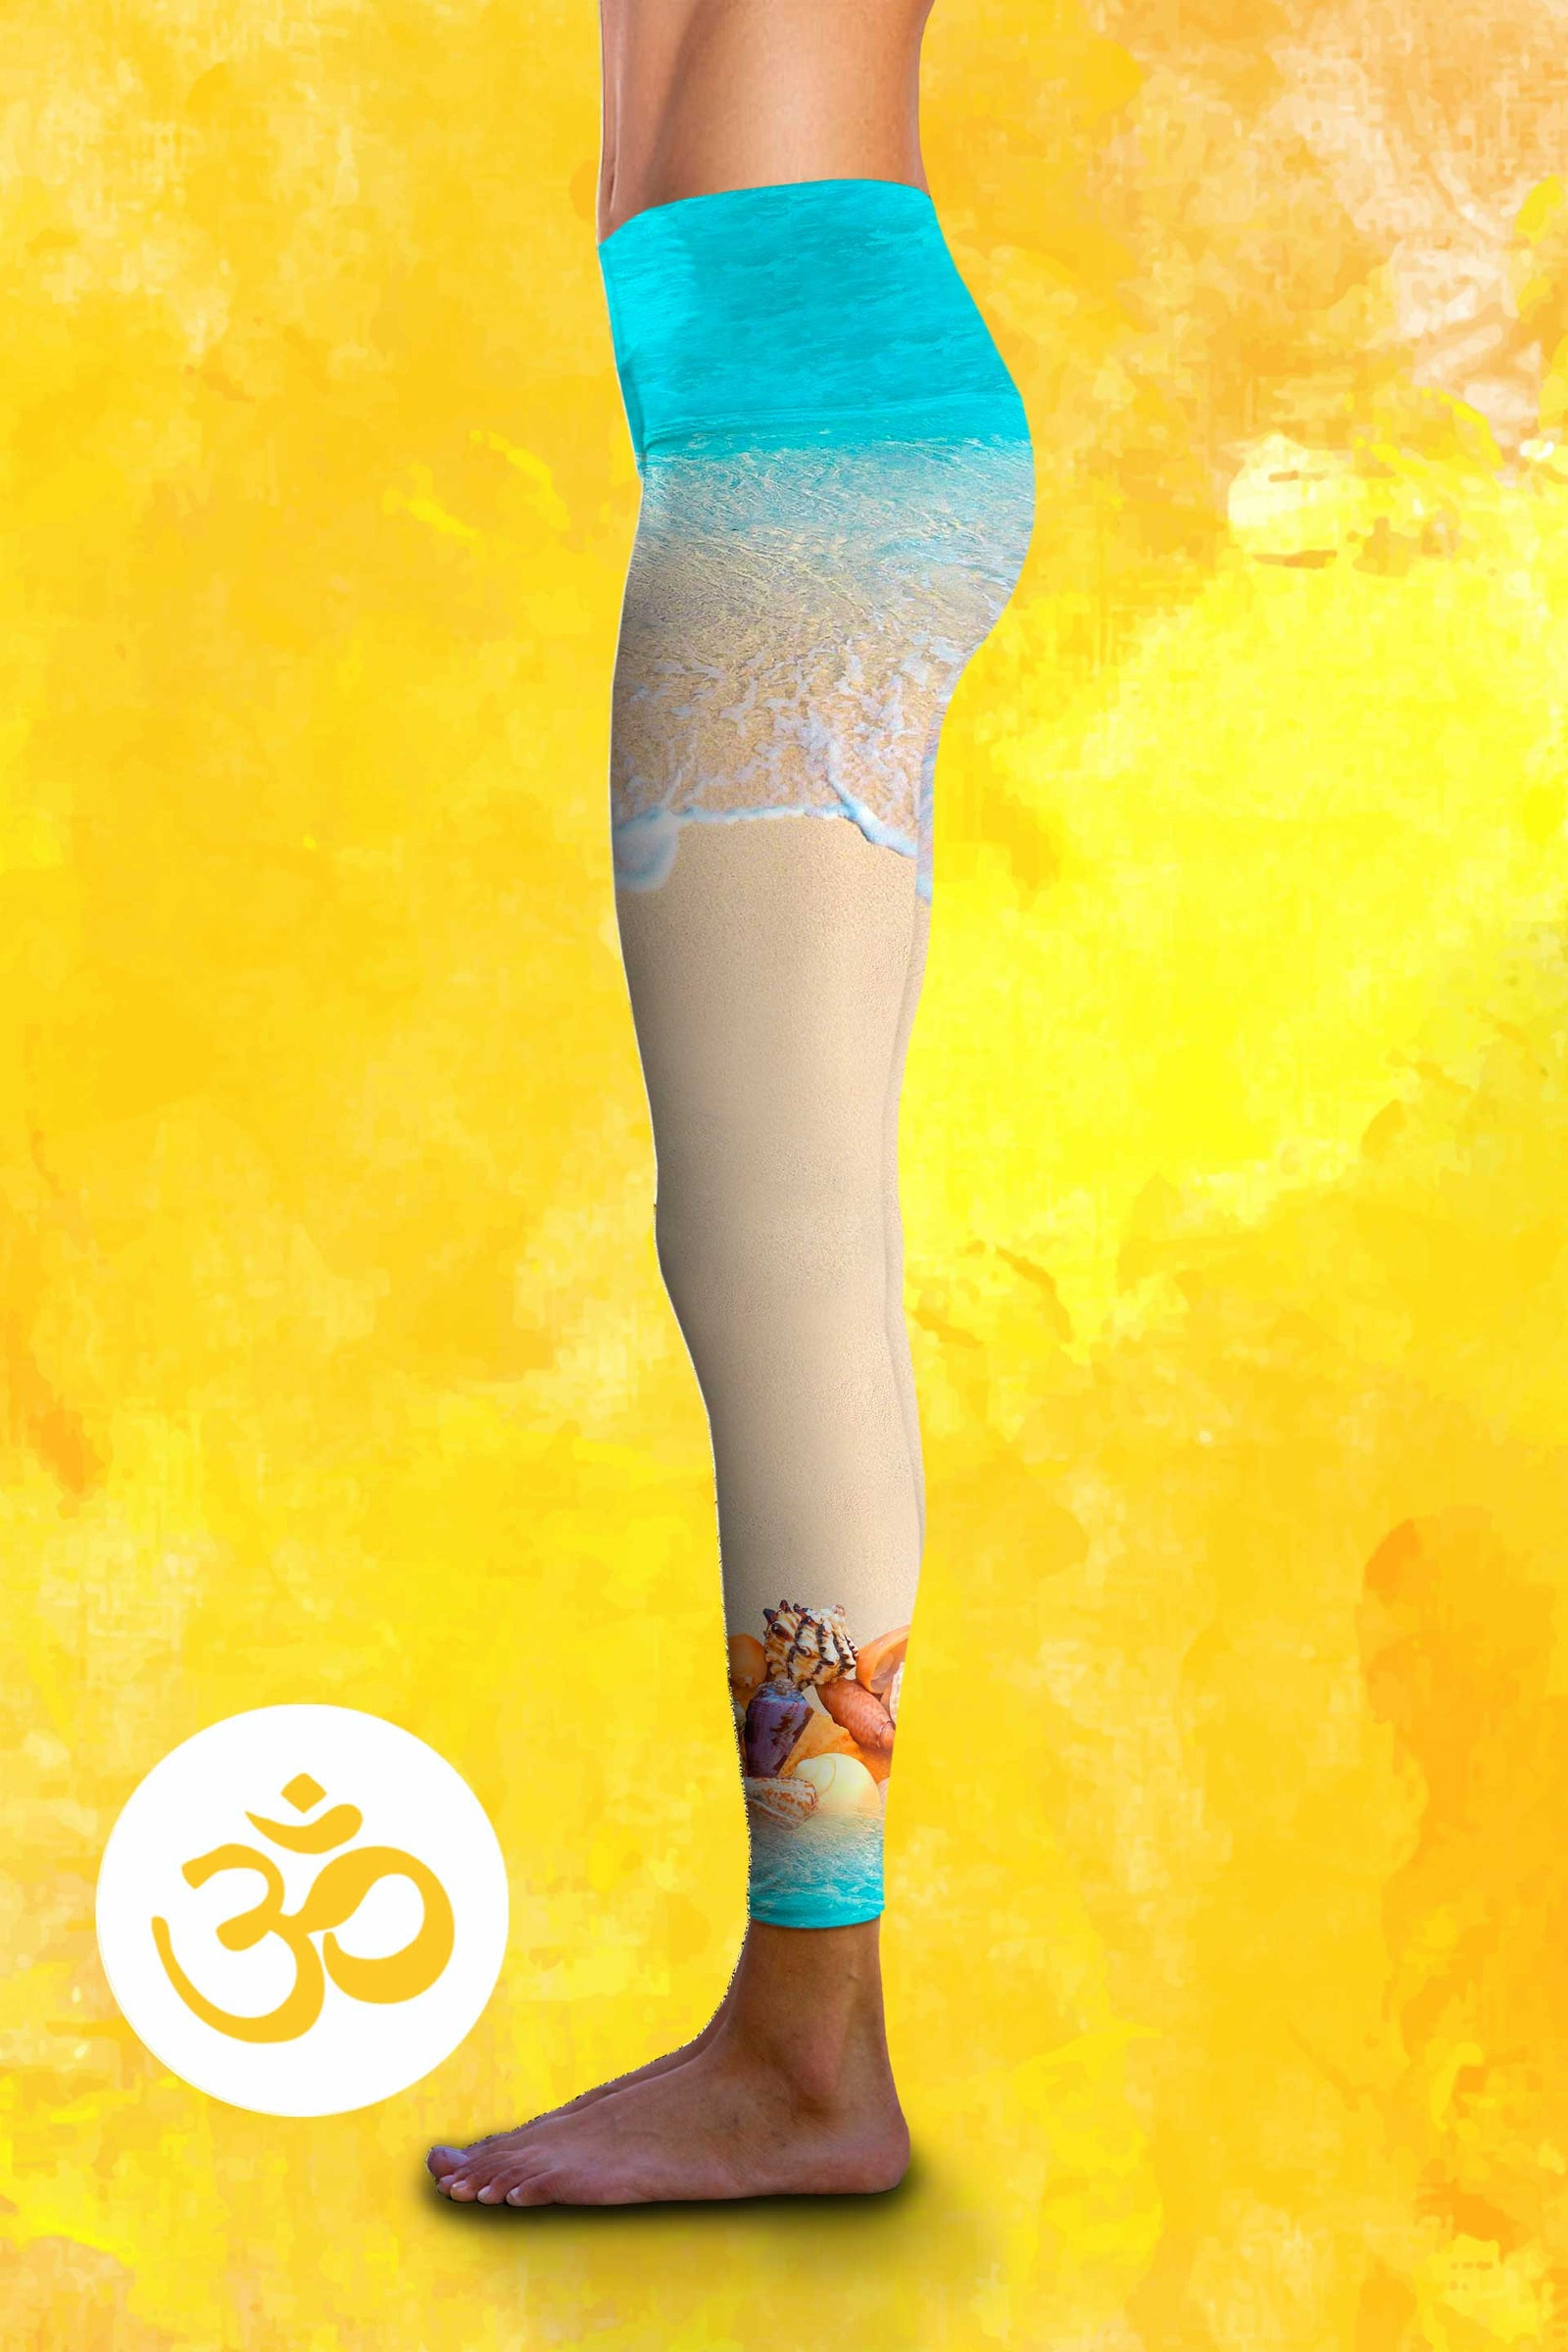 Hearts In The Sand Yoga Pants - These versatile, high-rise tights were designed to fit like a second skinÌÎ_ÌÎÌà_ÌÎ_ÌÎÌà_‰ۡó»?ÌÎ_ÌÎÌà__ÌÎ_ÌÎÌà_‰ۡó»?å±perfect for yoga or the gym.